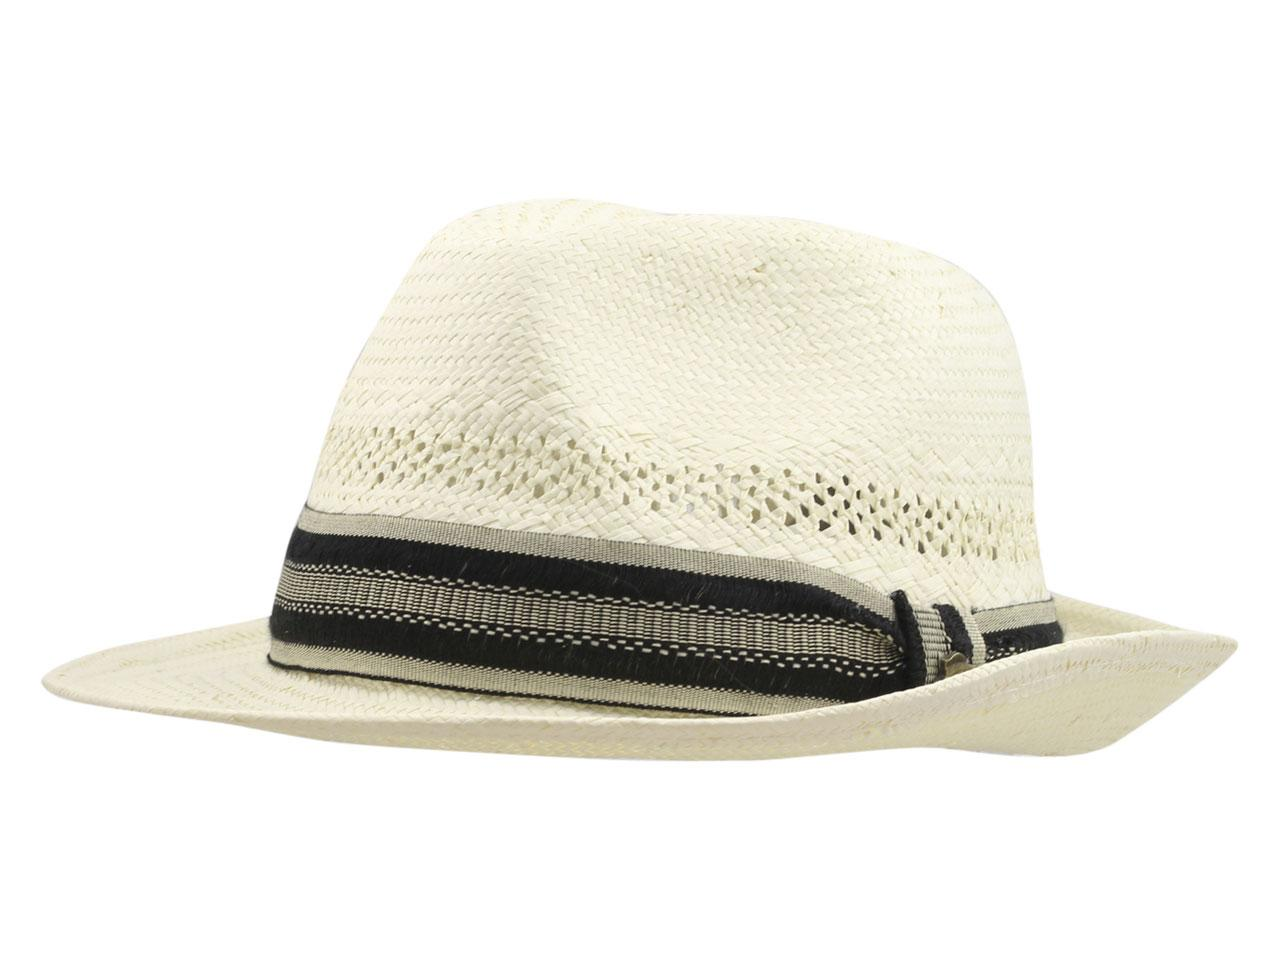 39399f093c019 Tommy Bahama Men s Vented Toyo Fedora Hat by Tommy Bahama. Touch to zoom